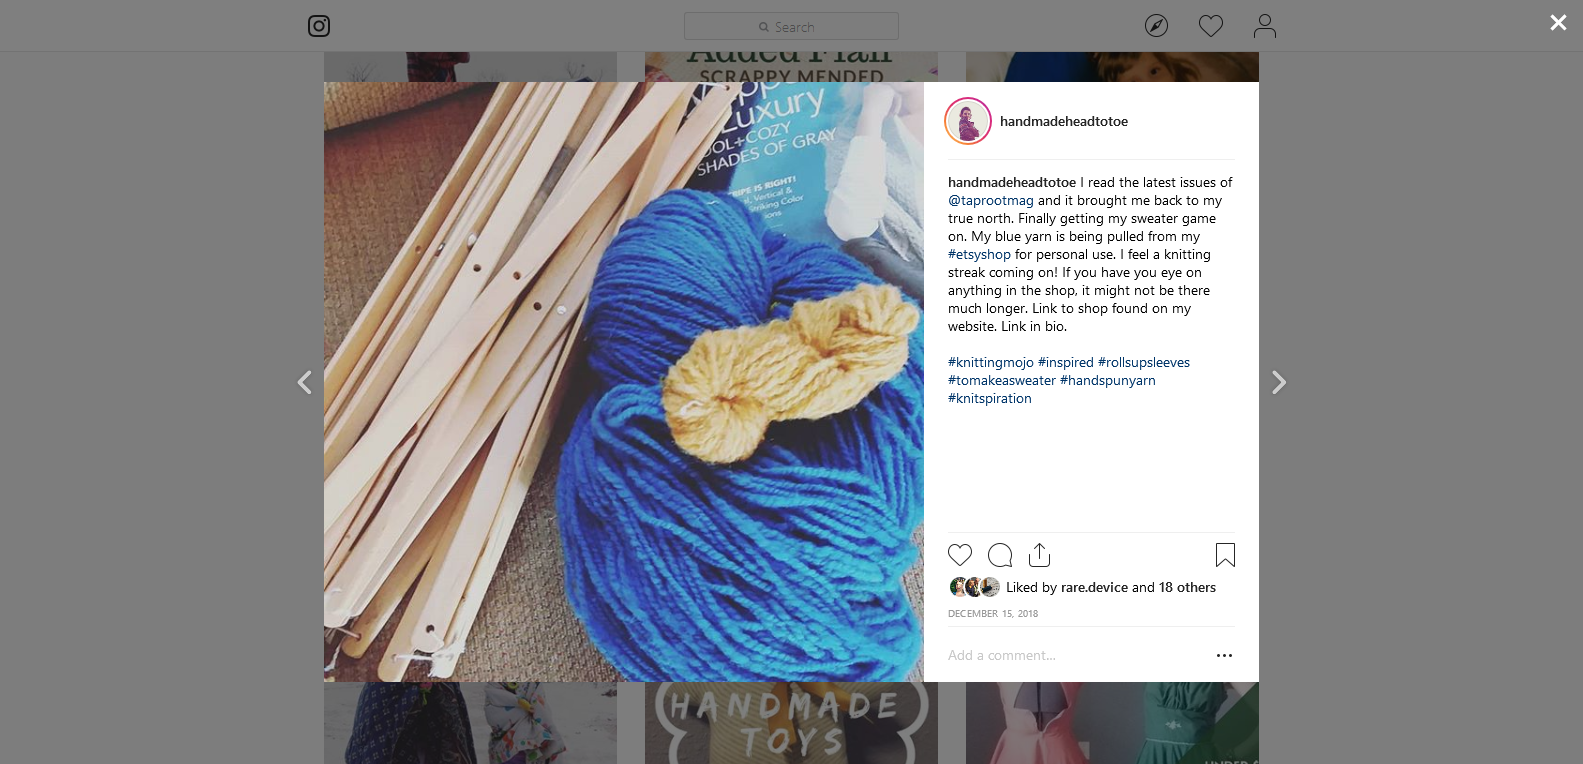 If you follow me on Instagram, you've seen this yarn before. Here's my onion dyed mini-skein with it. The color matches pretty closely to what I actually used.